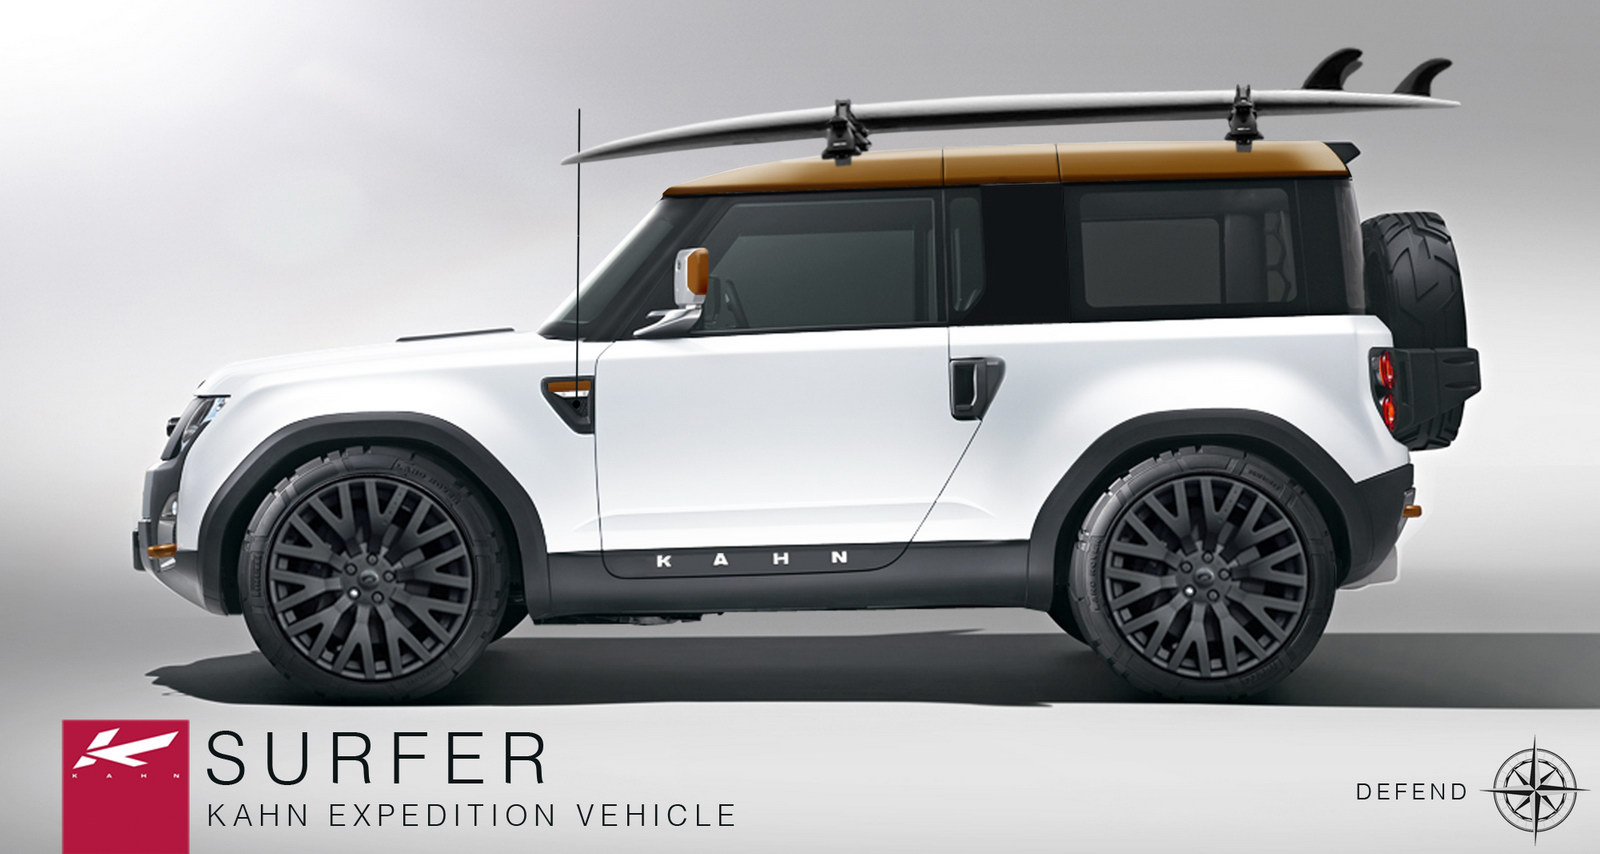 Land Rover Defender DC100 Carscoop Project Kahn Recreates Free Download Image Of